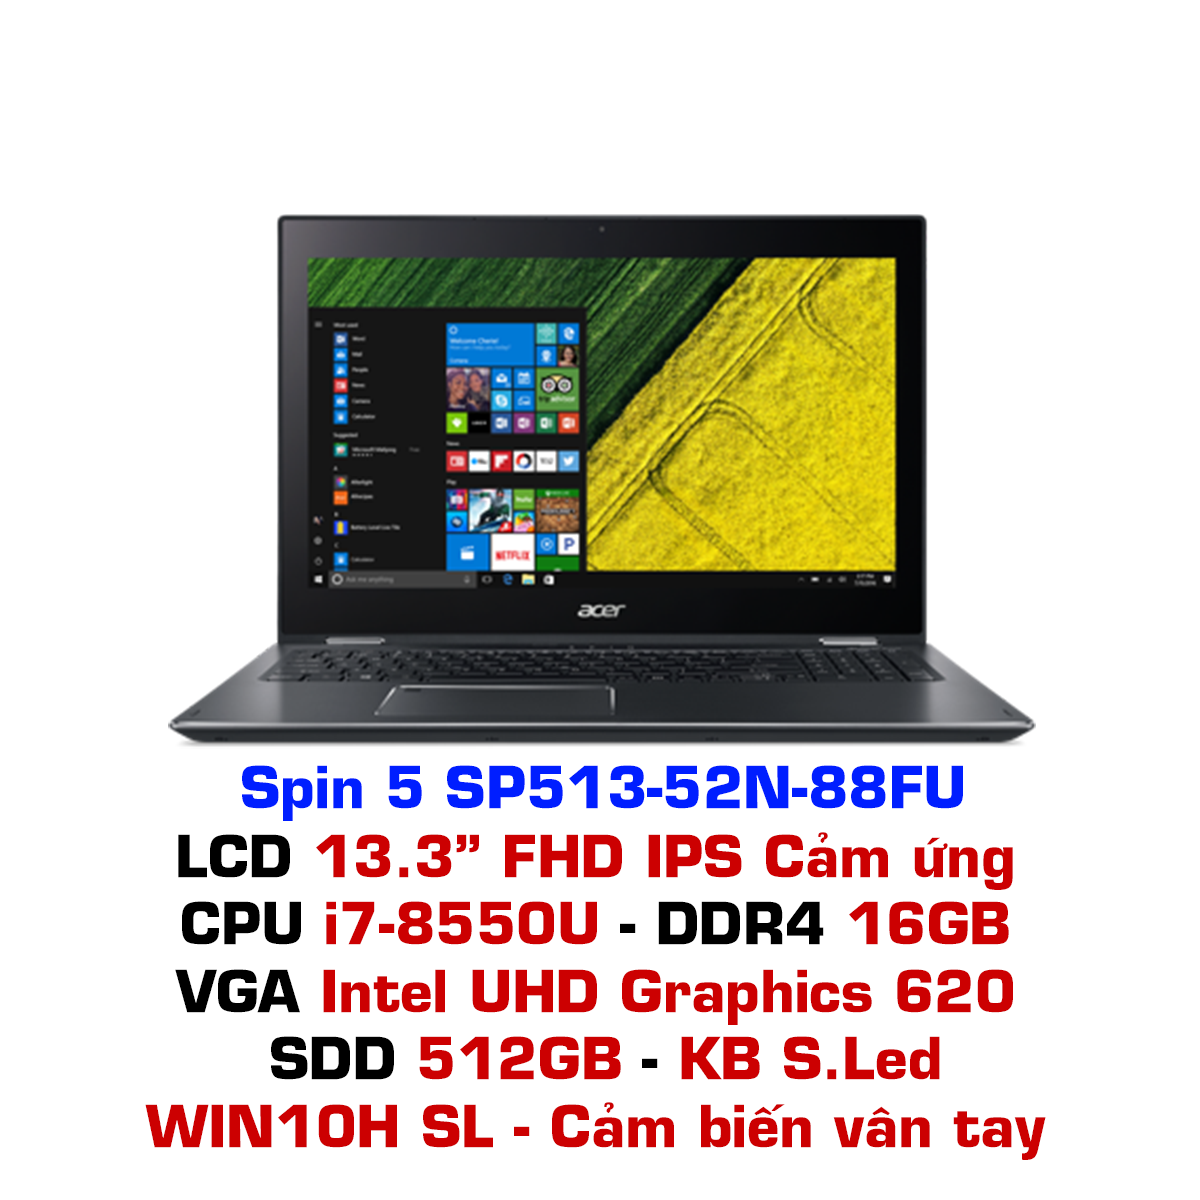 Laptop Acer Spin 5 SP513-52N-88FU Xám